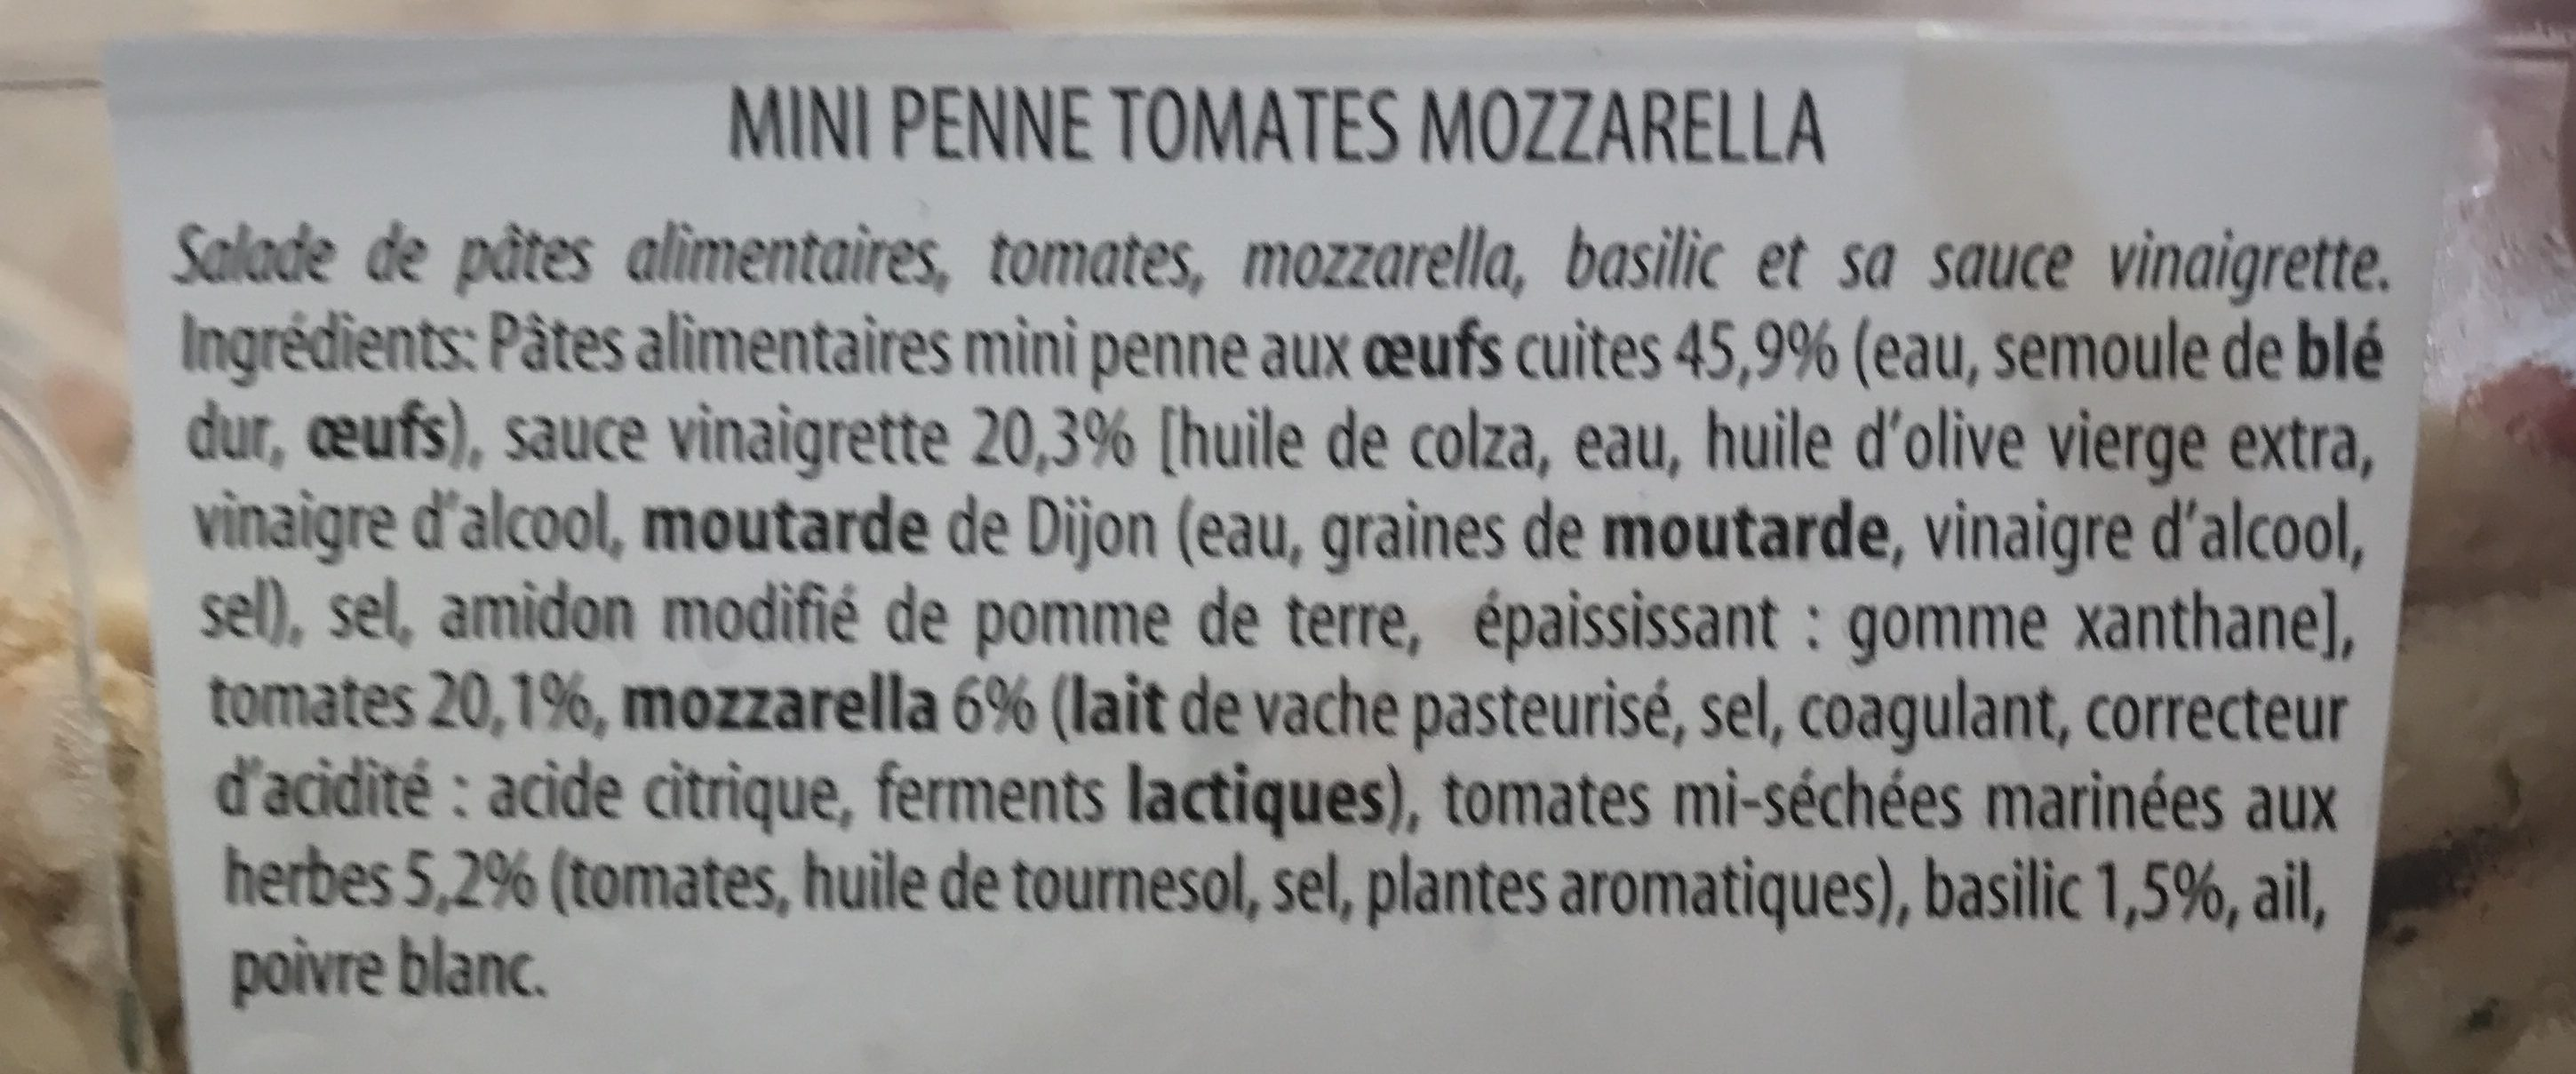 Mini Penne Tomates Mozzarella - Ingredients